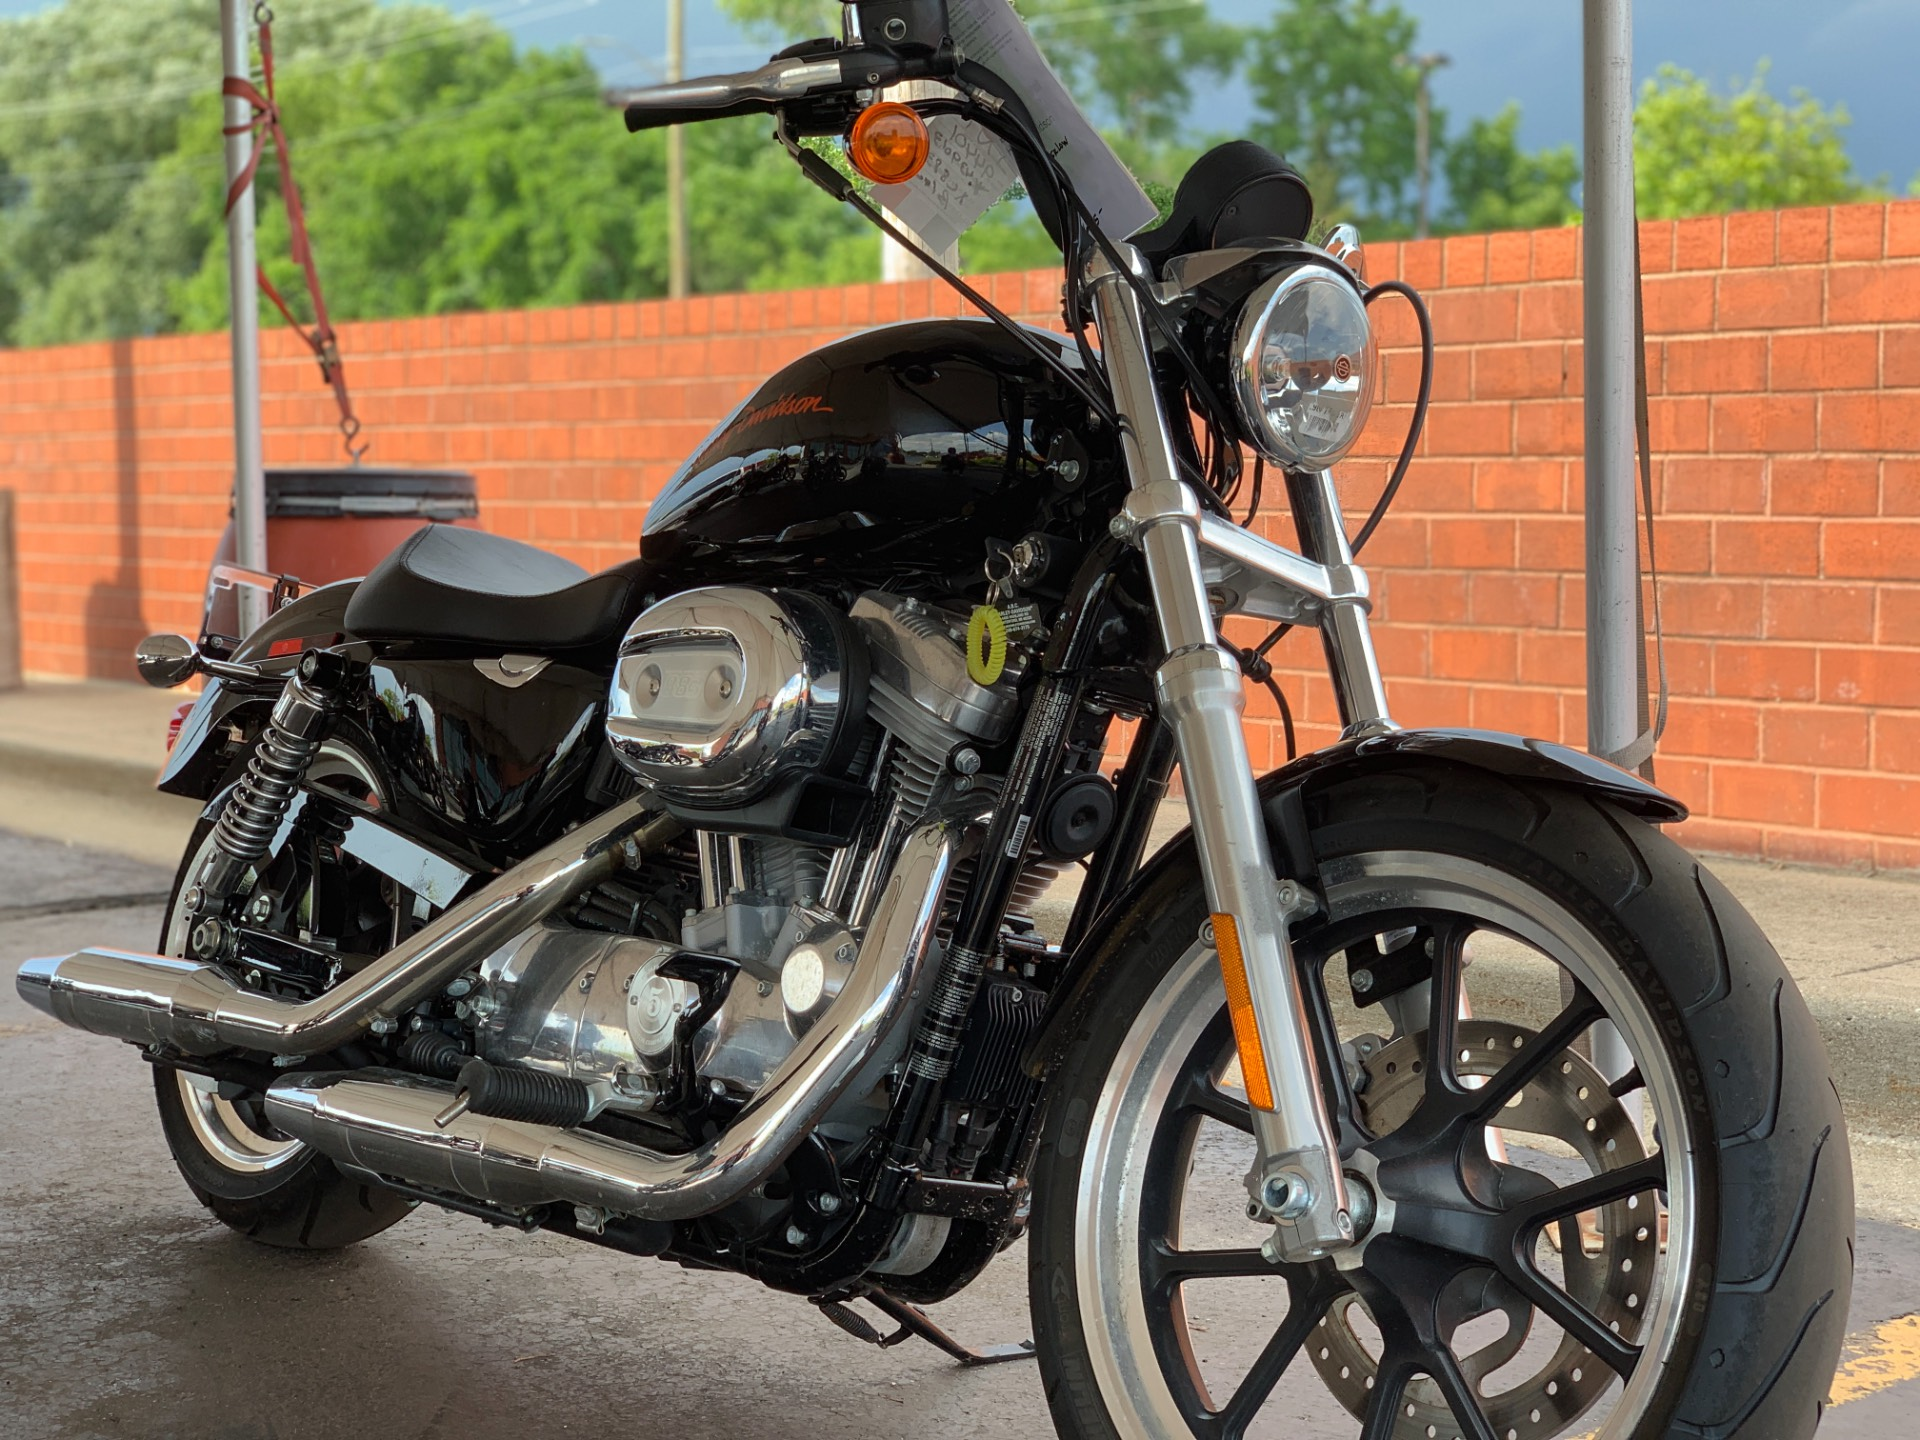 2014 Harley-Davidson XL883L in Waterford, Michigan - Photo 2